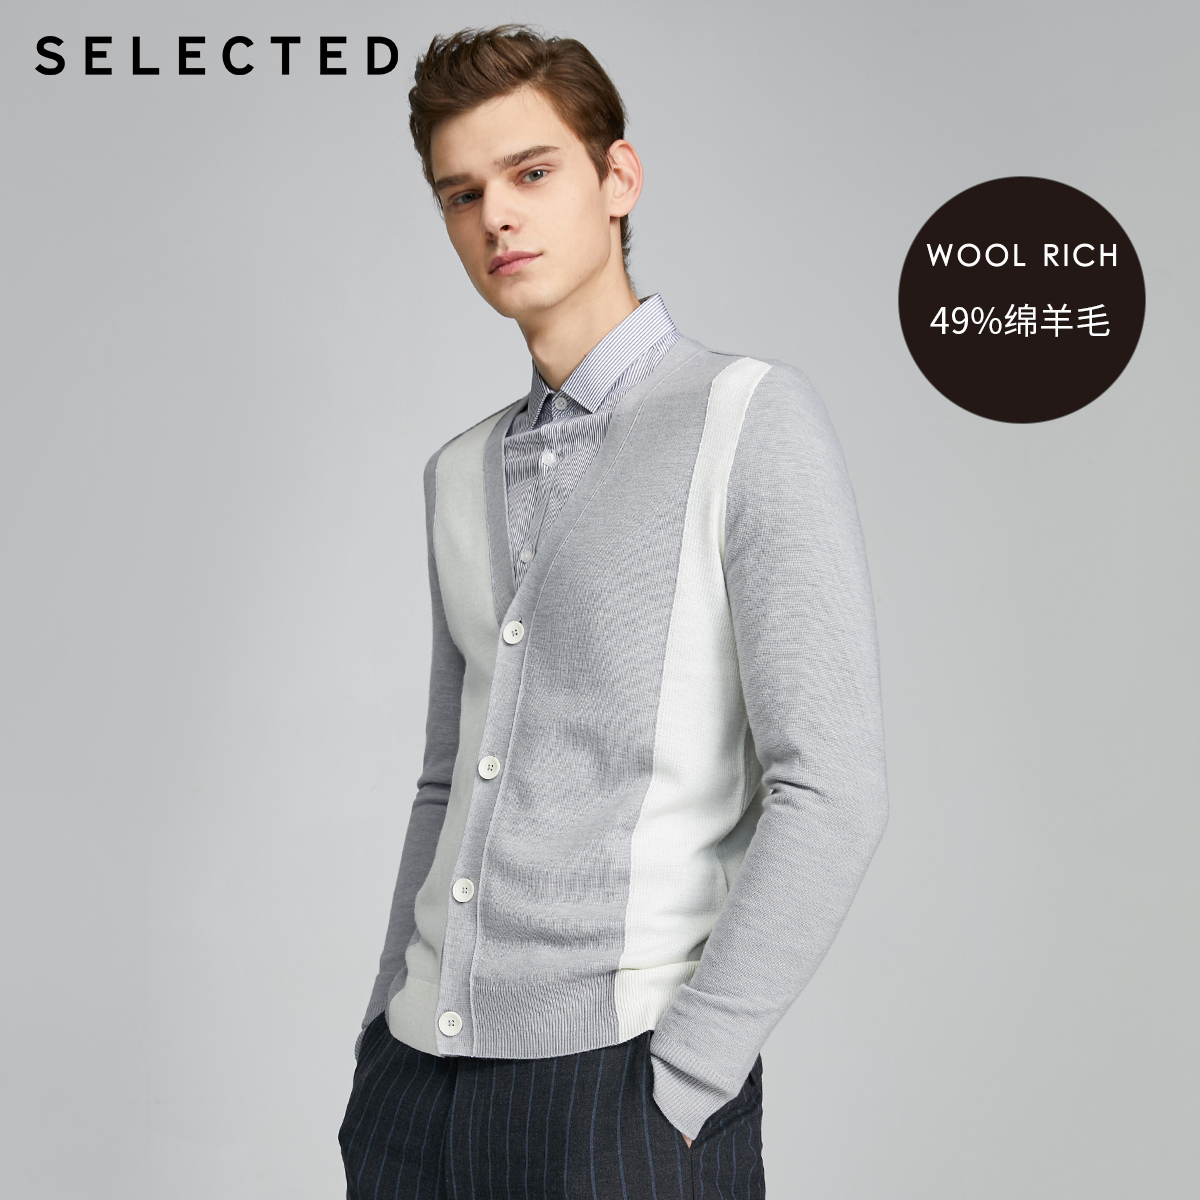 SELECTED Men's Assorted Colors Woolen Cardigan Knit Sweater S|420124530